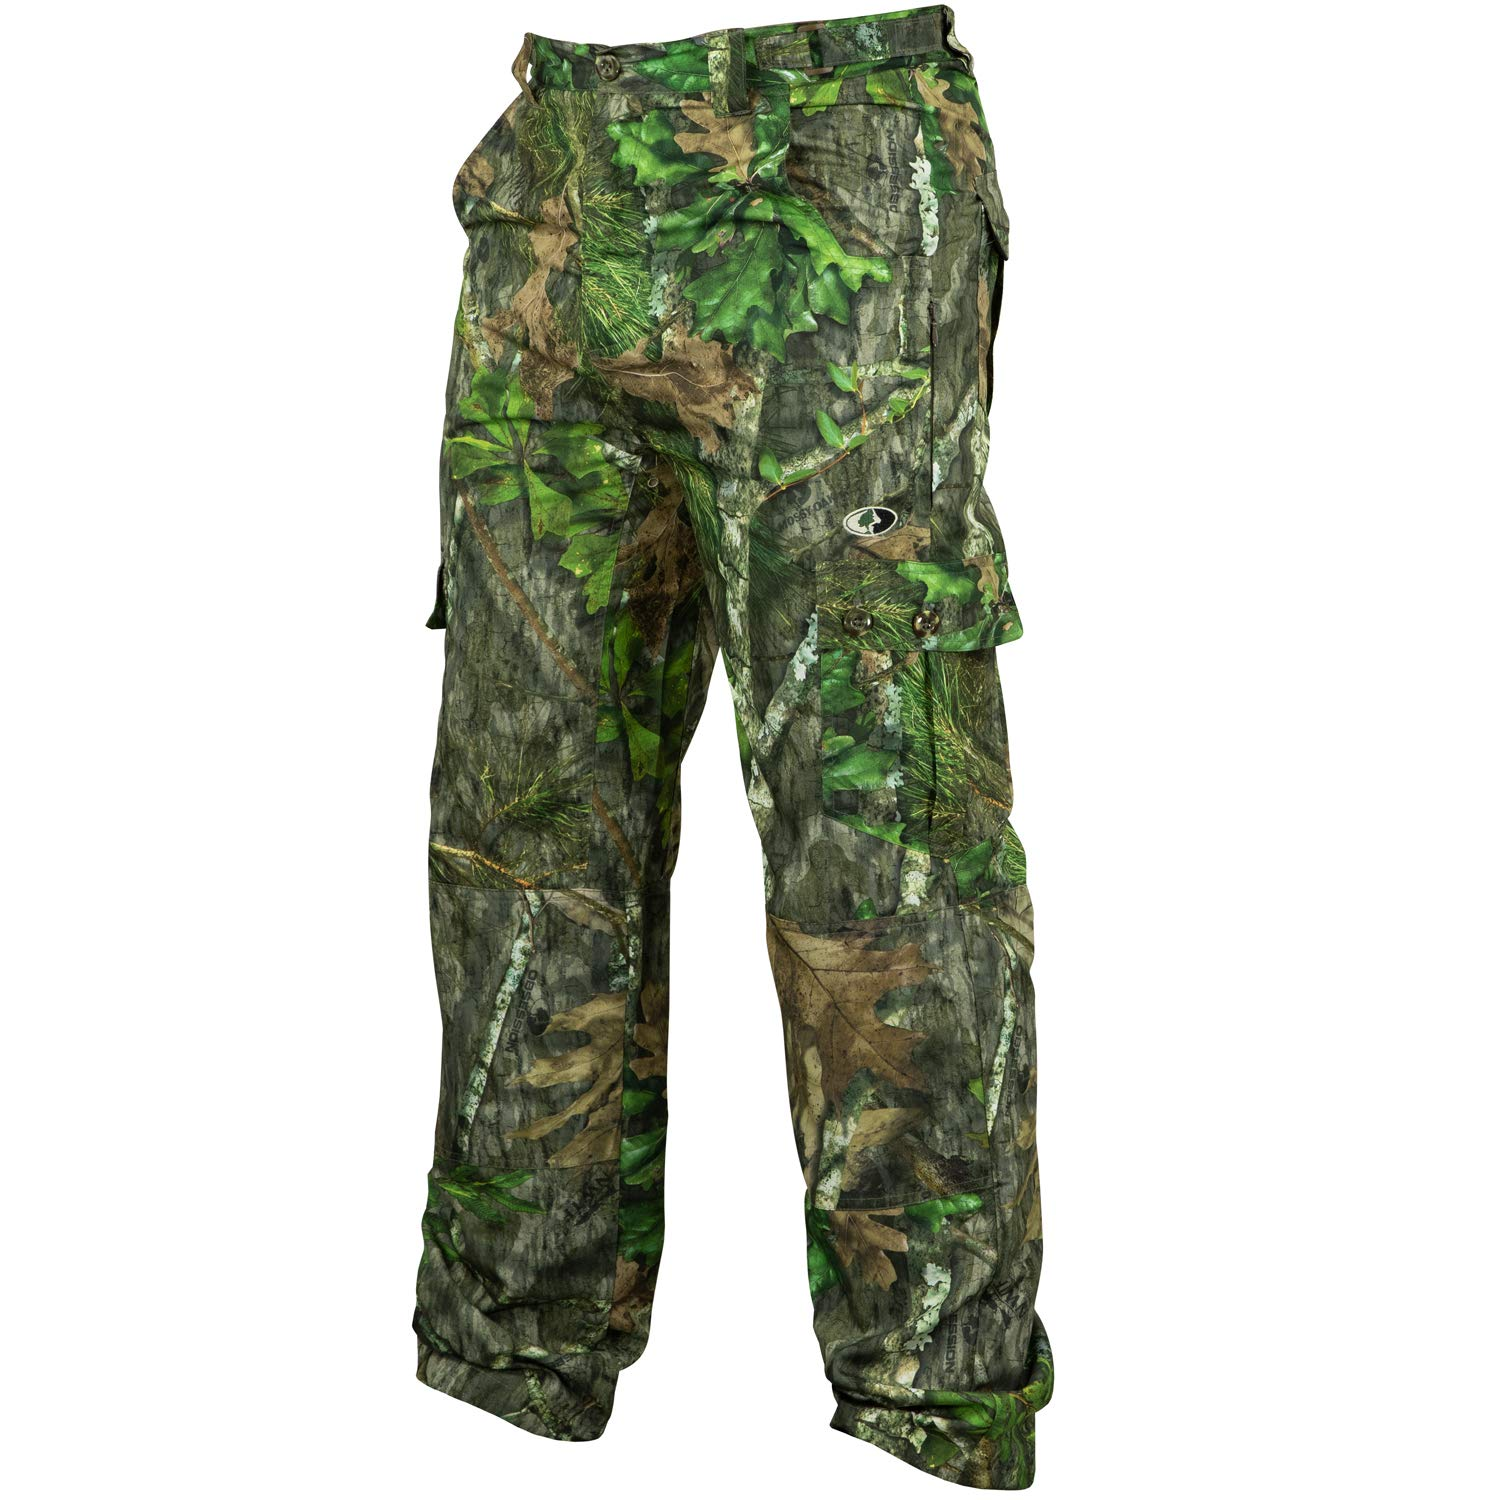 Mossy Oak Men's Tibbee Technical Lightweight Camo Hunting Pants, Obsession, 3X-Large by Mossy Oak (Image #1)